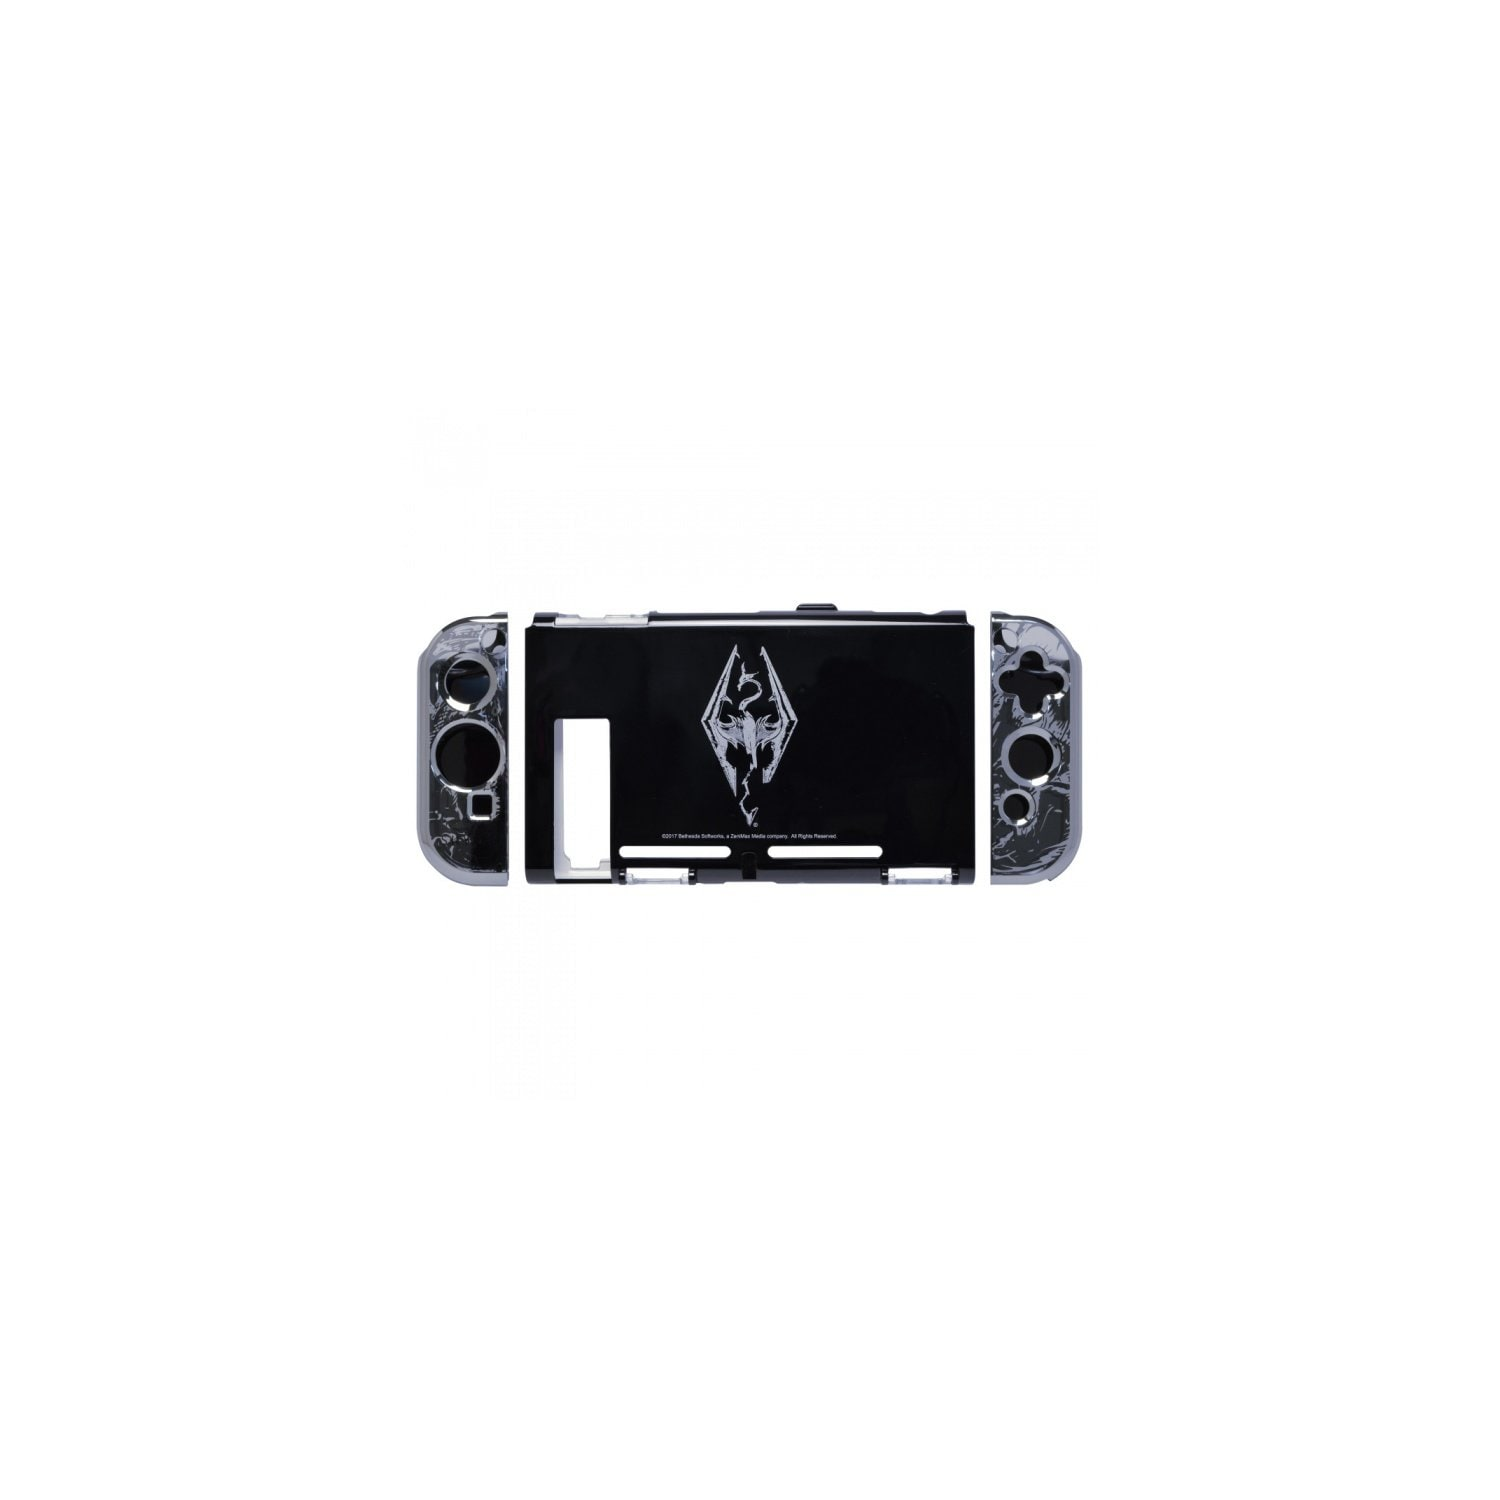 Etui HORI Skyrim Protector do Nintendo Switch